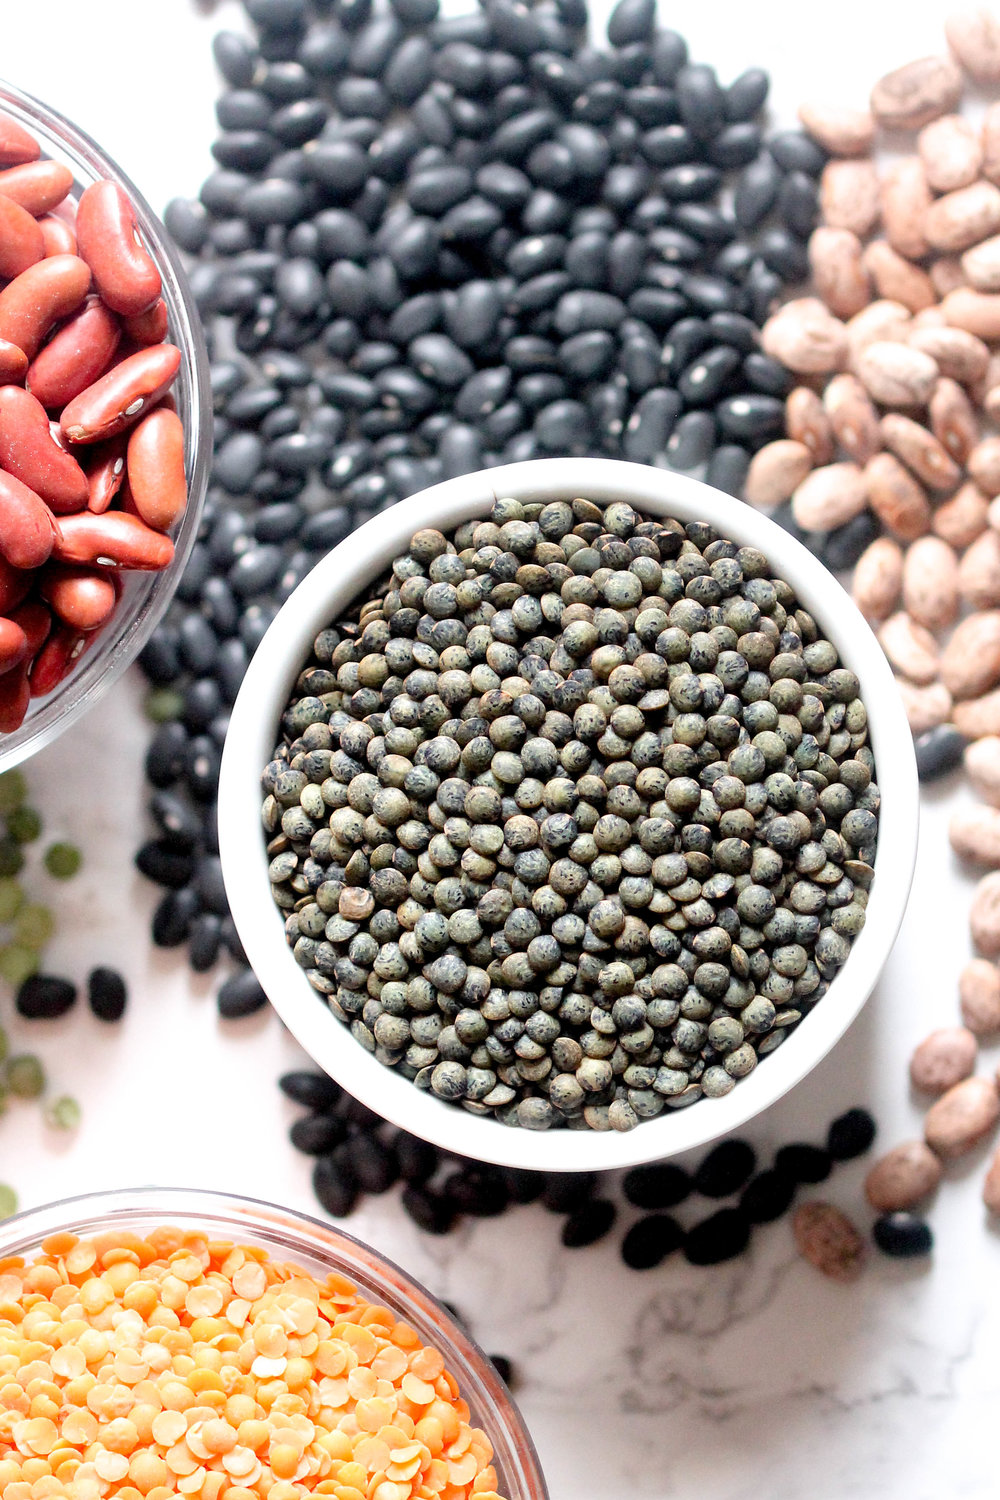 Importance of Legumes